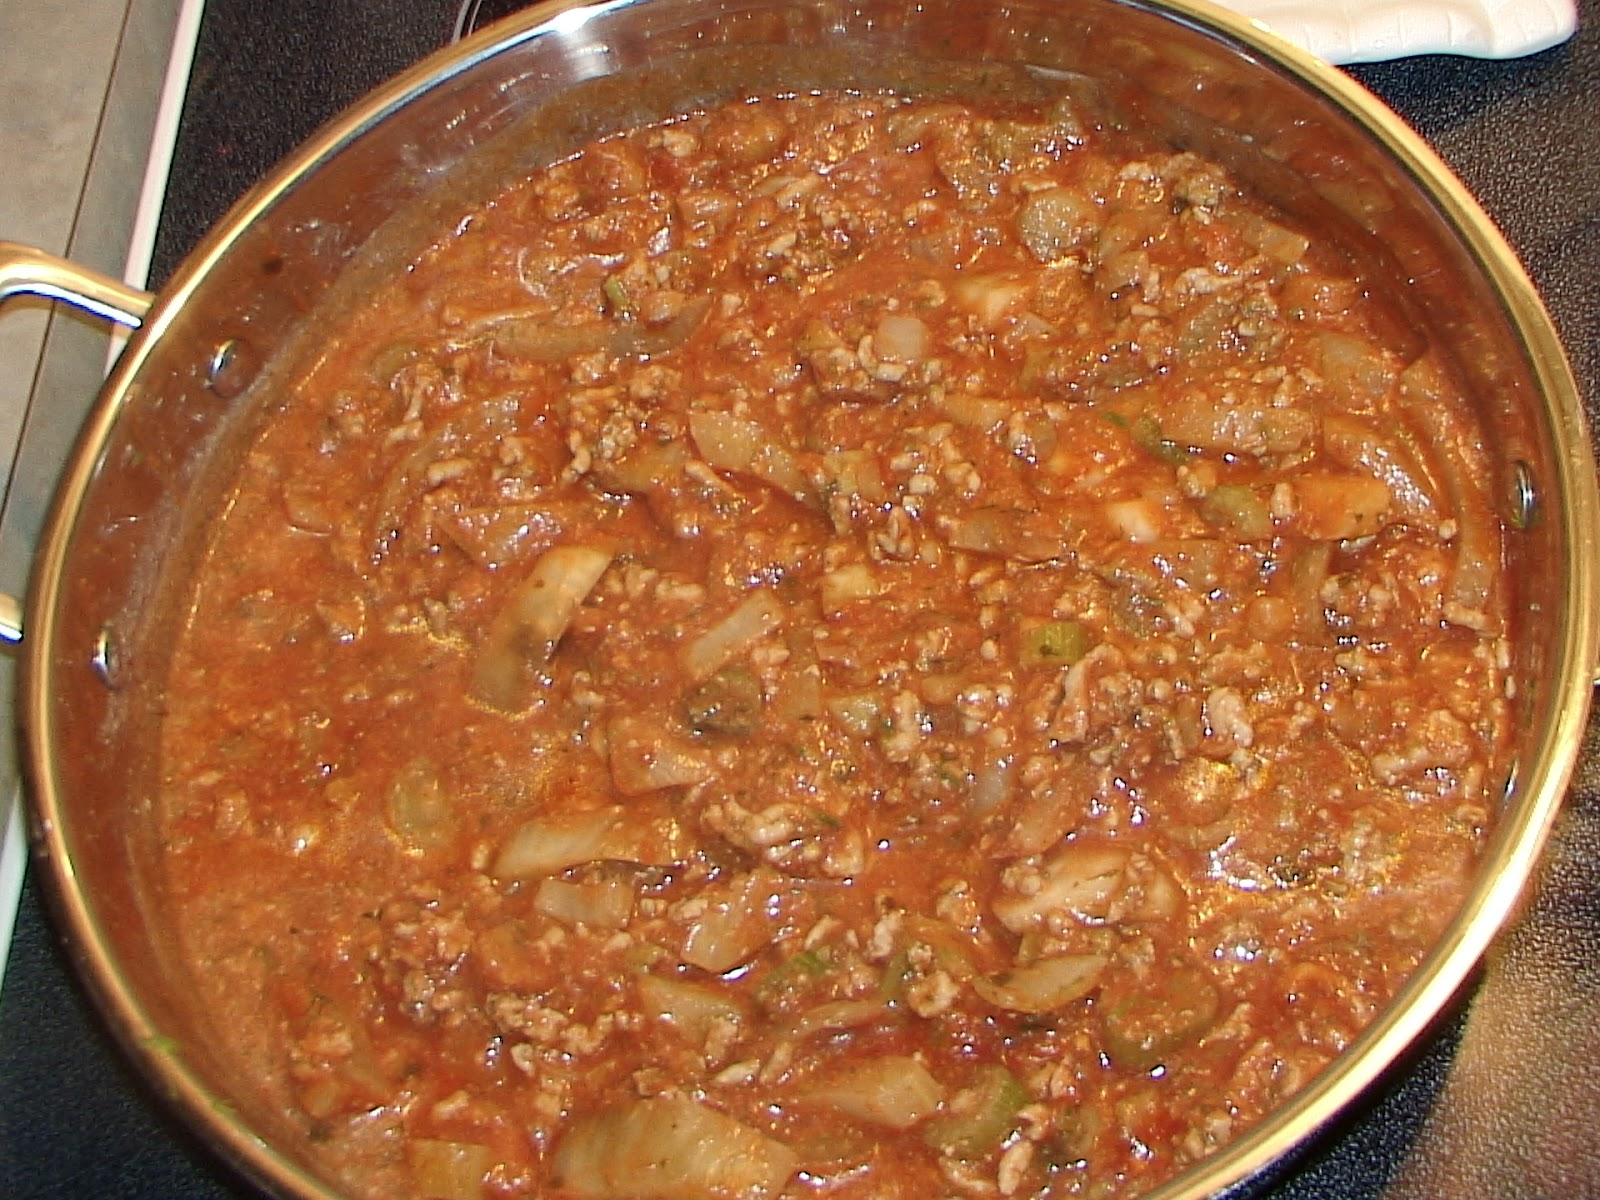 Healthy Life Lessons: Braised Fennel and Turkey Bolognese Sauce